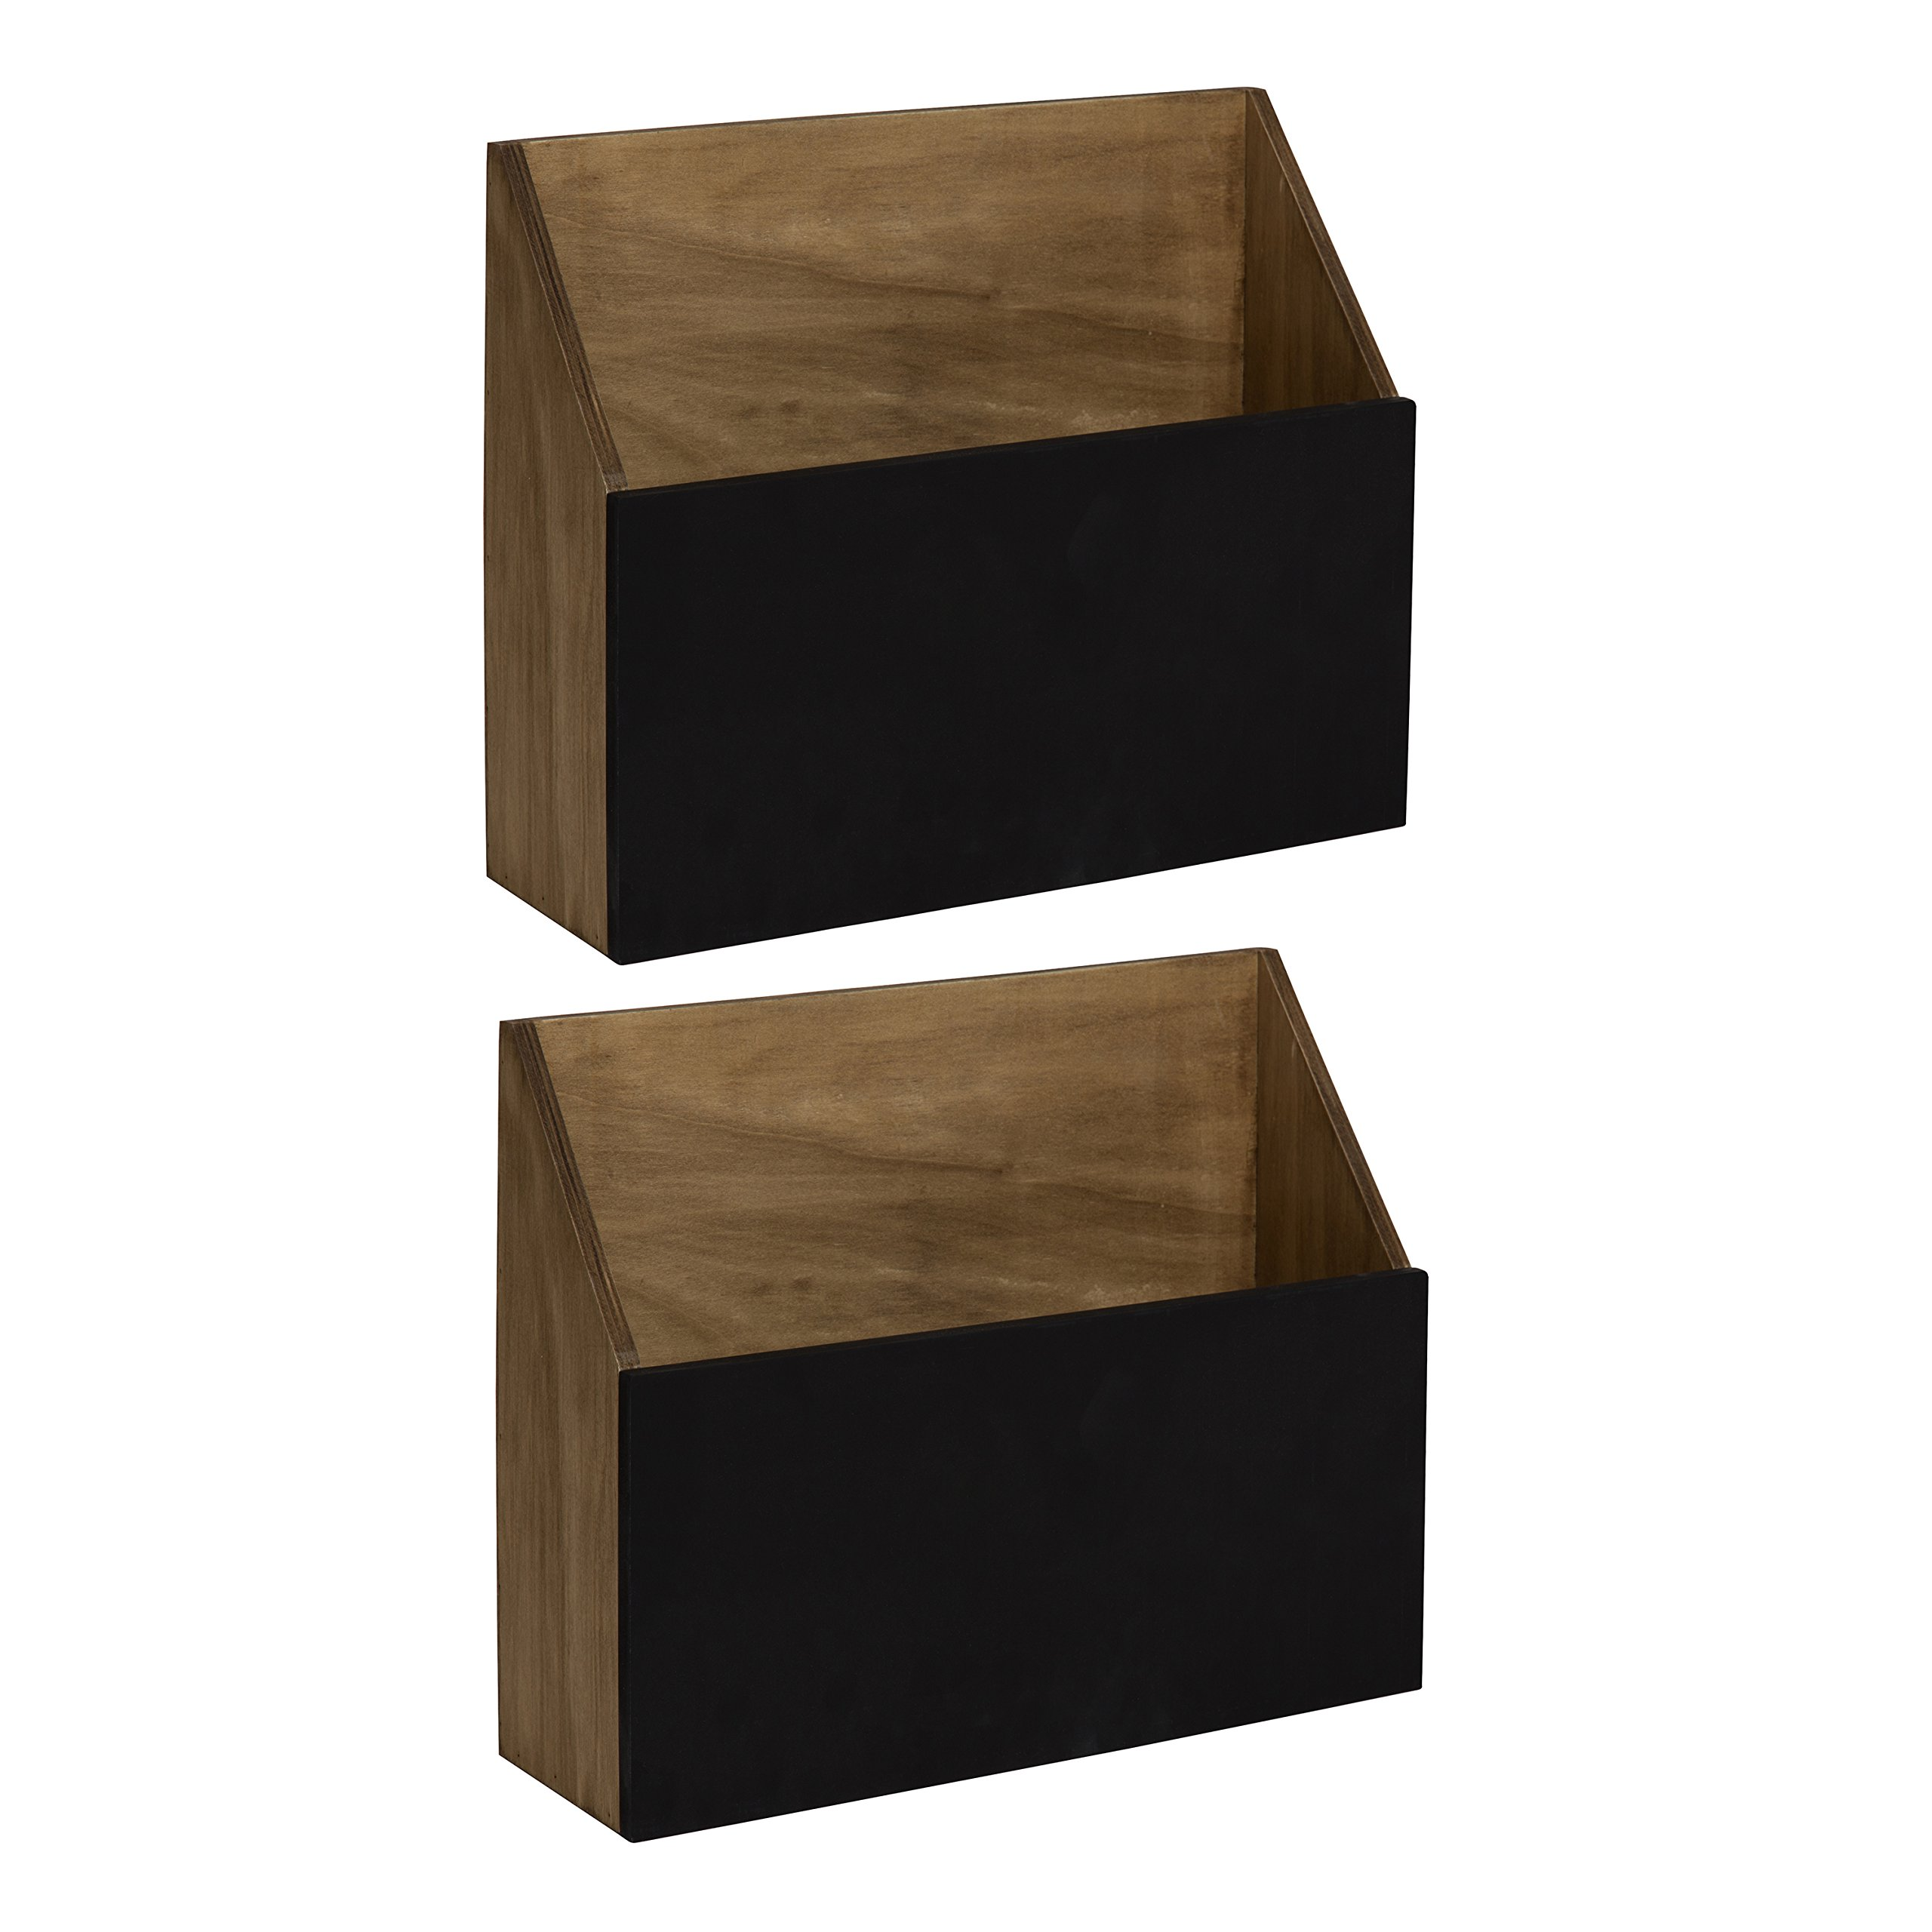 Kate and Laurel Benbrook Wall Pocket Shelves, Light Rustic Brown with Chalkboard Front Panel, Set of 2 by Kate and Laurel